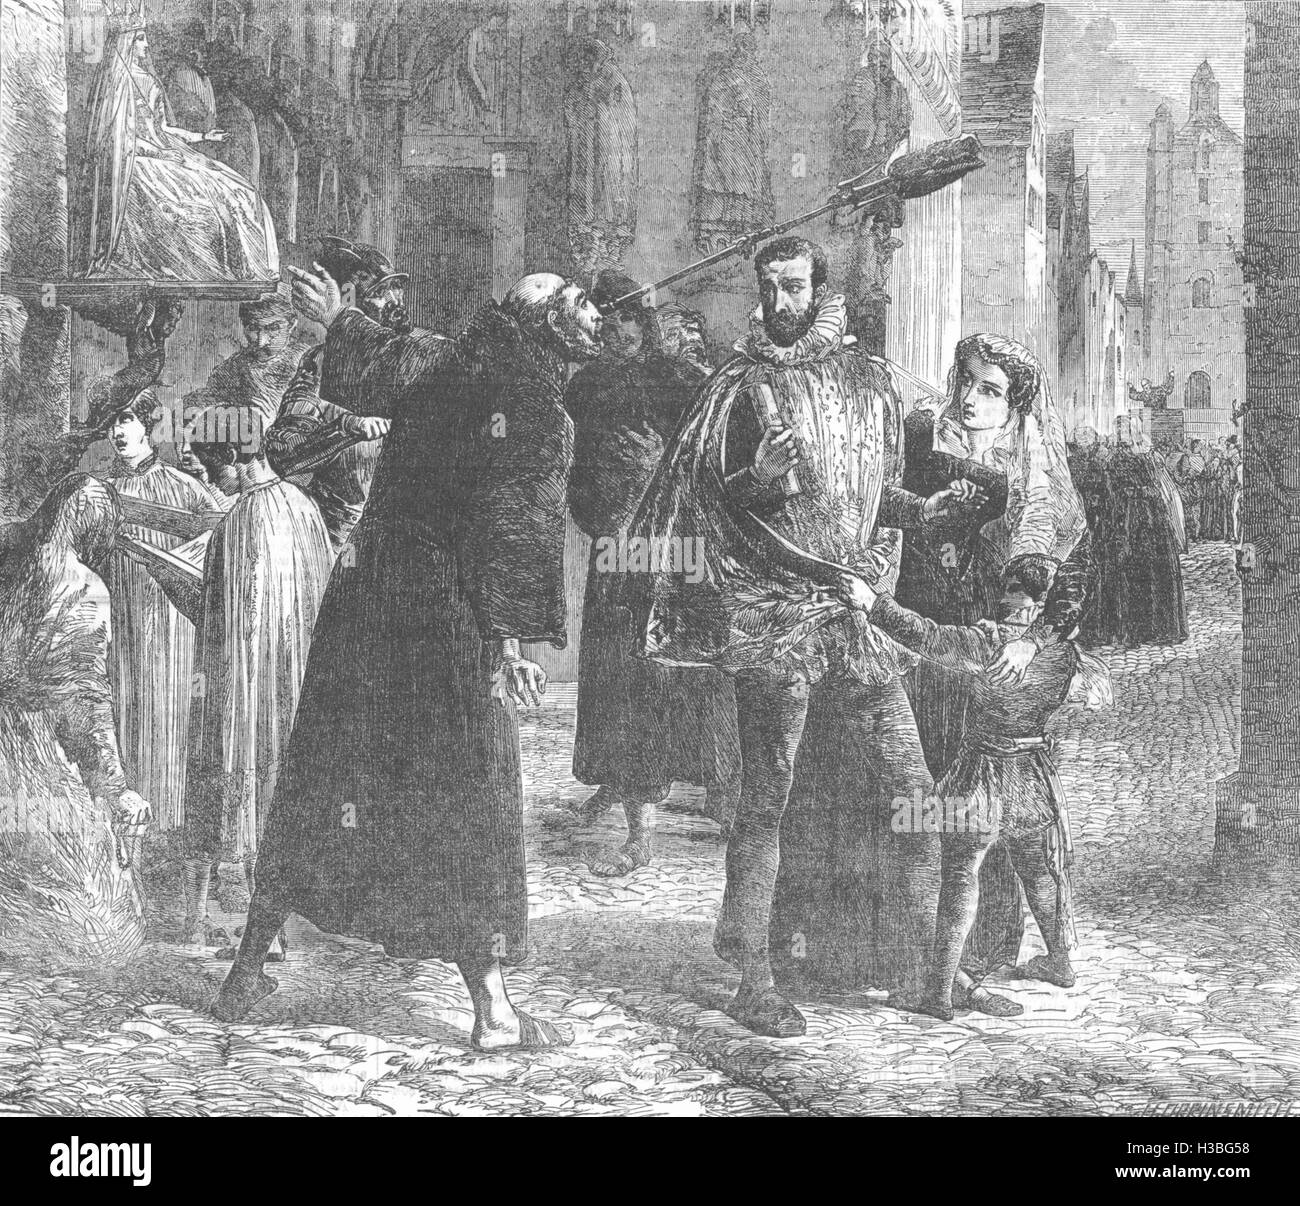 PARIS Time of the Persecution of the Christian Reformers in Paris, in 1559 1854. The Illustrated London News - Stock Image